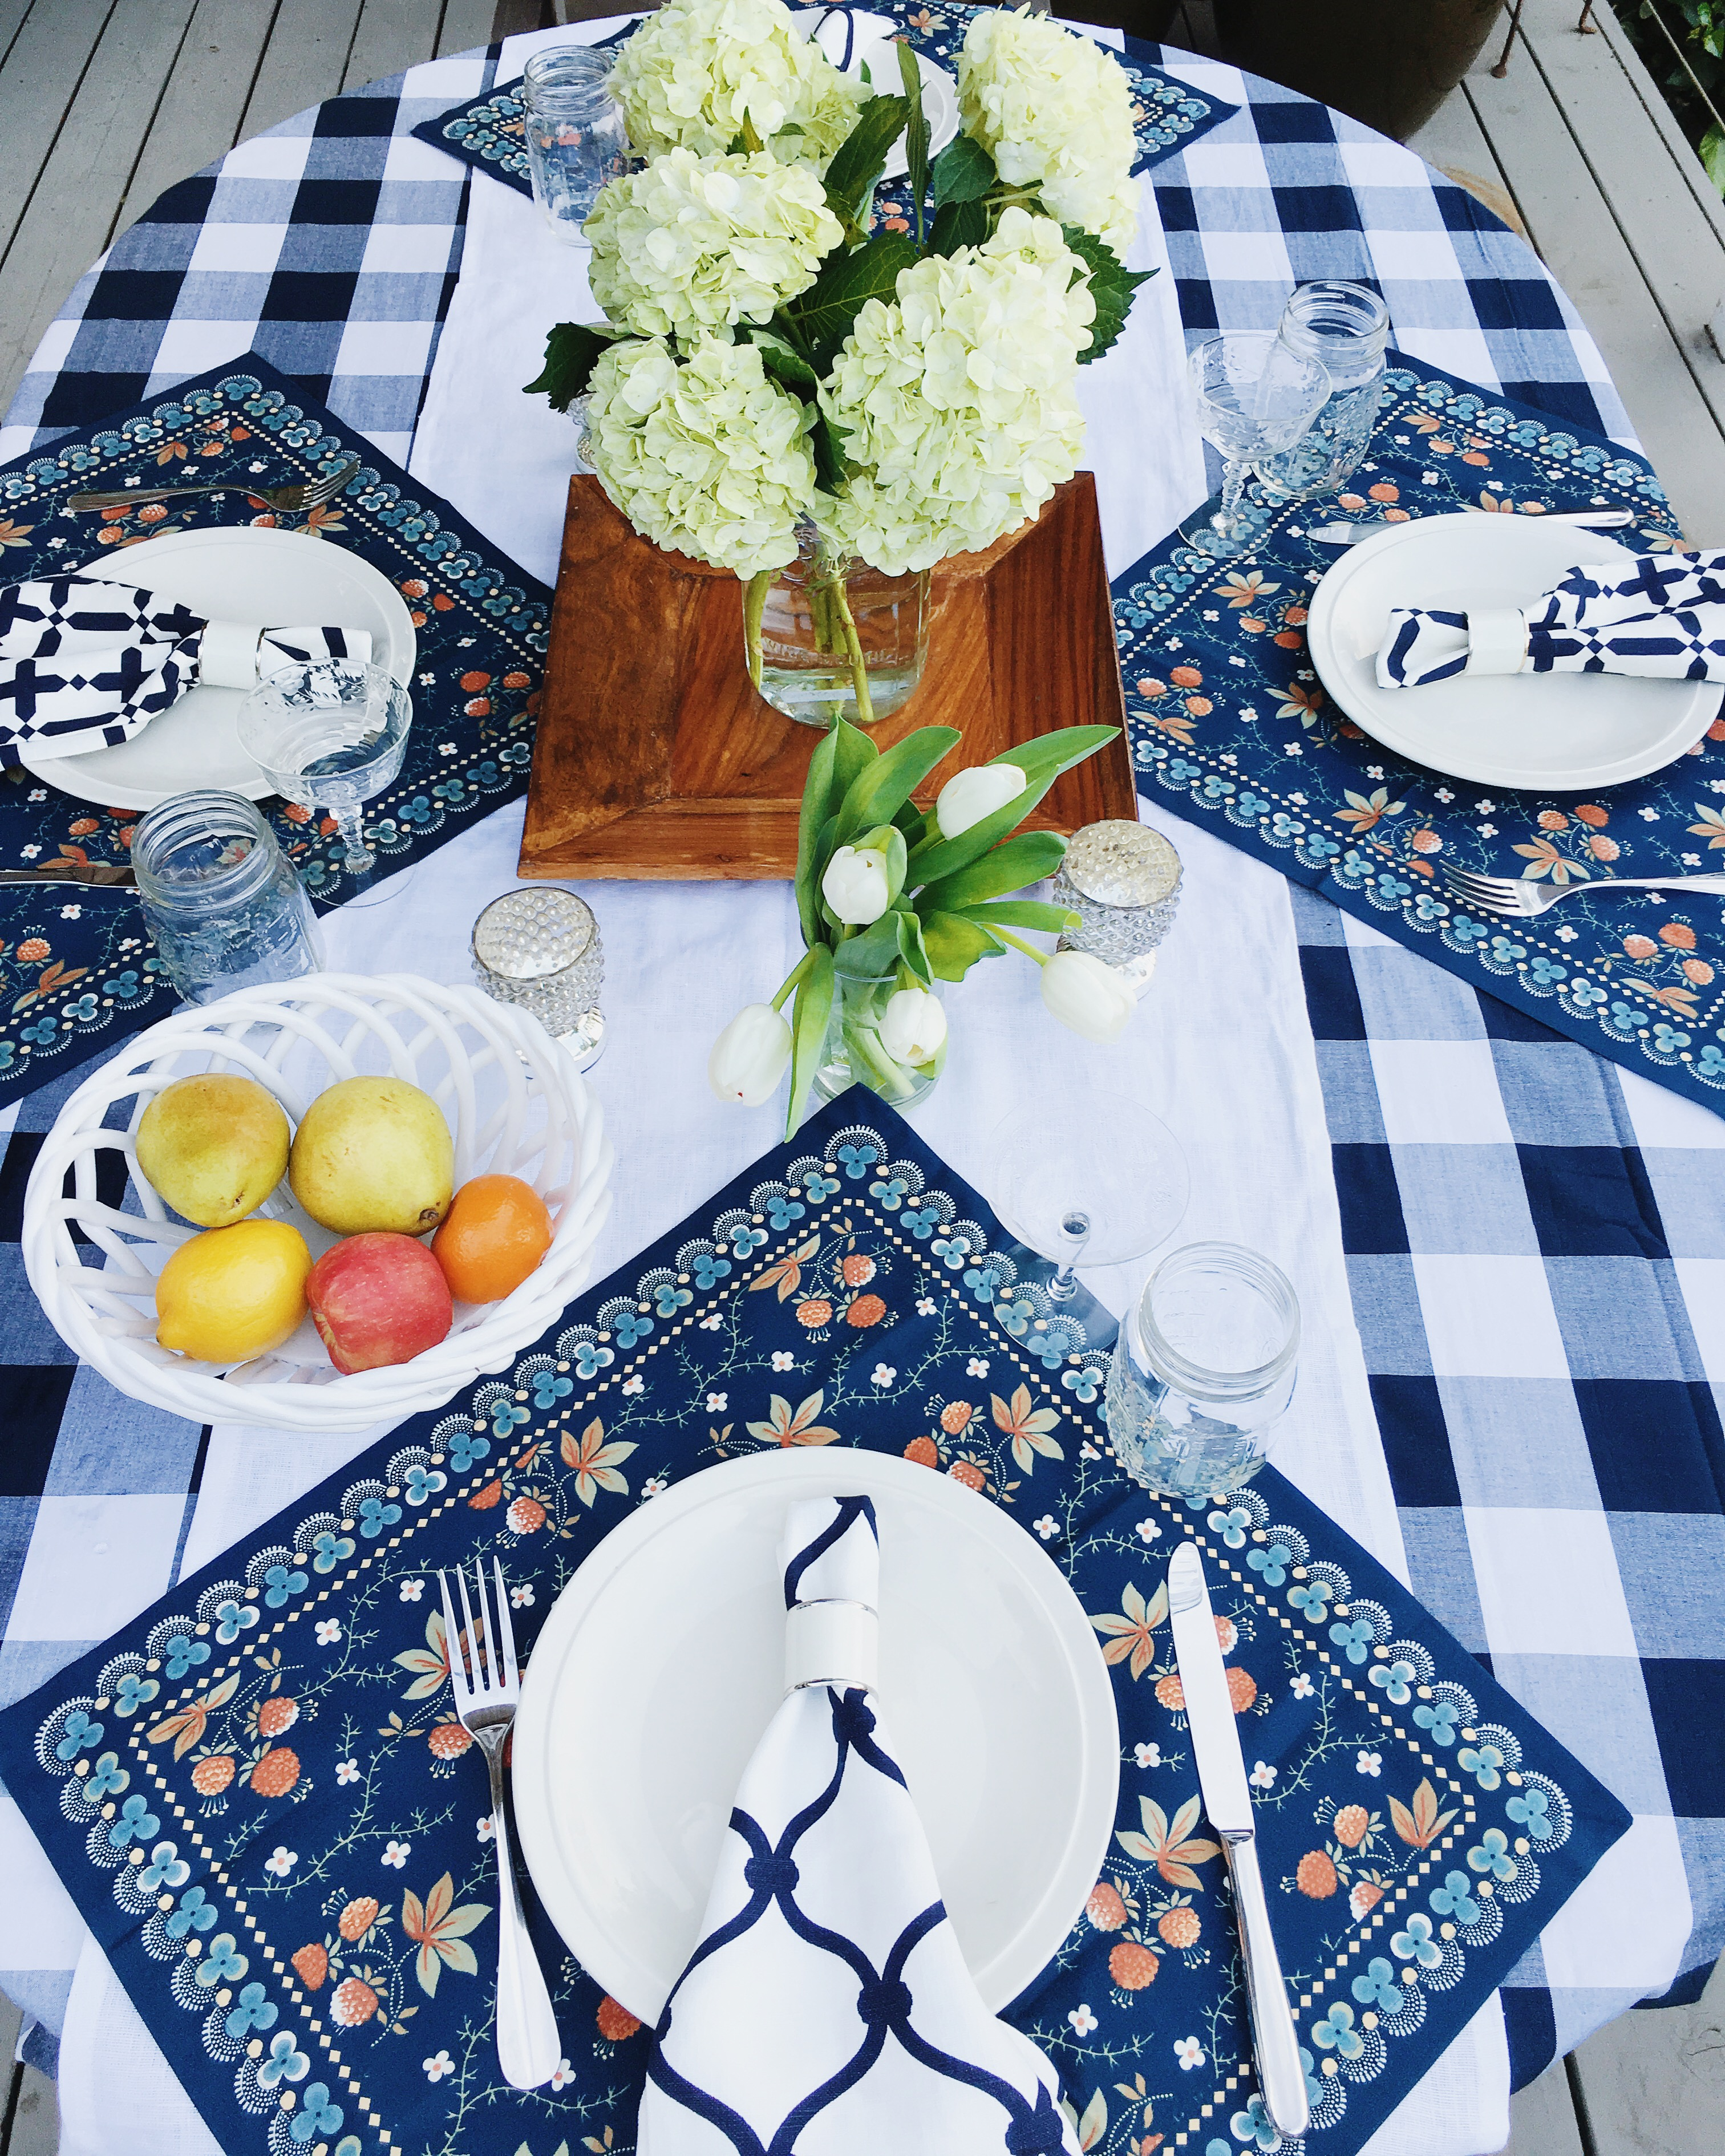 Blue White picnic table setting